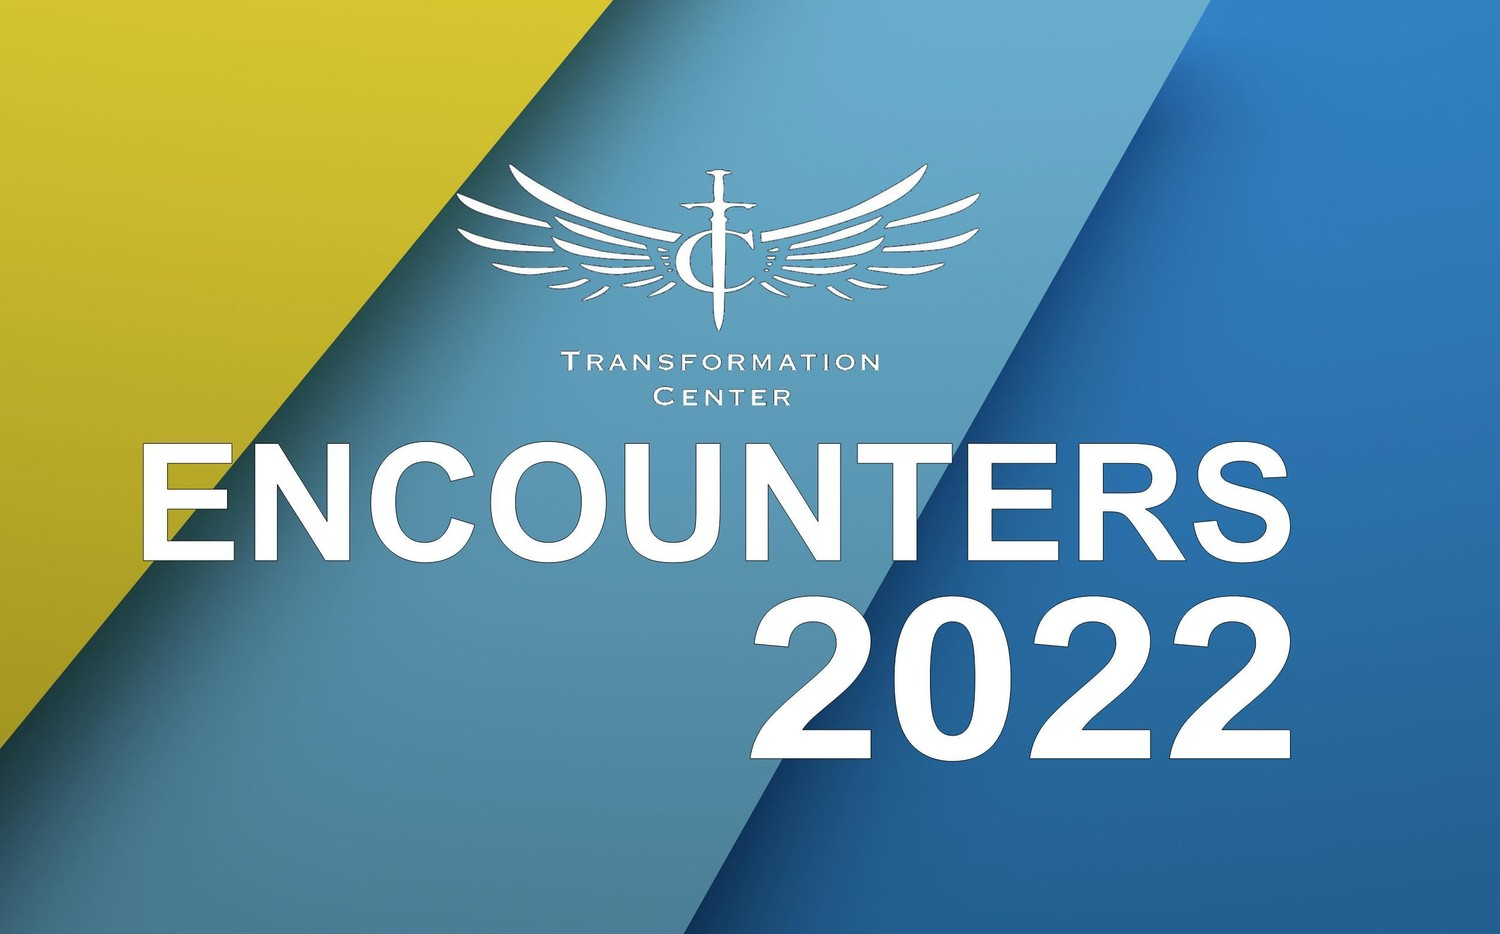 transformative encounters Introduction i have chosen to look at t1 diams because of my encounters with them since now nearly two years i will use my knowledge from my studies of transformative counseling encounters.